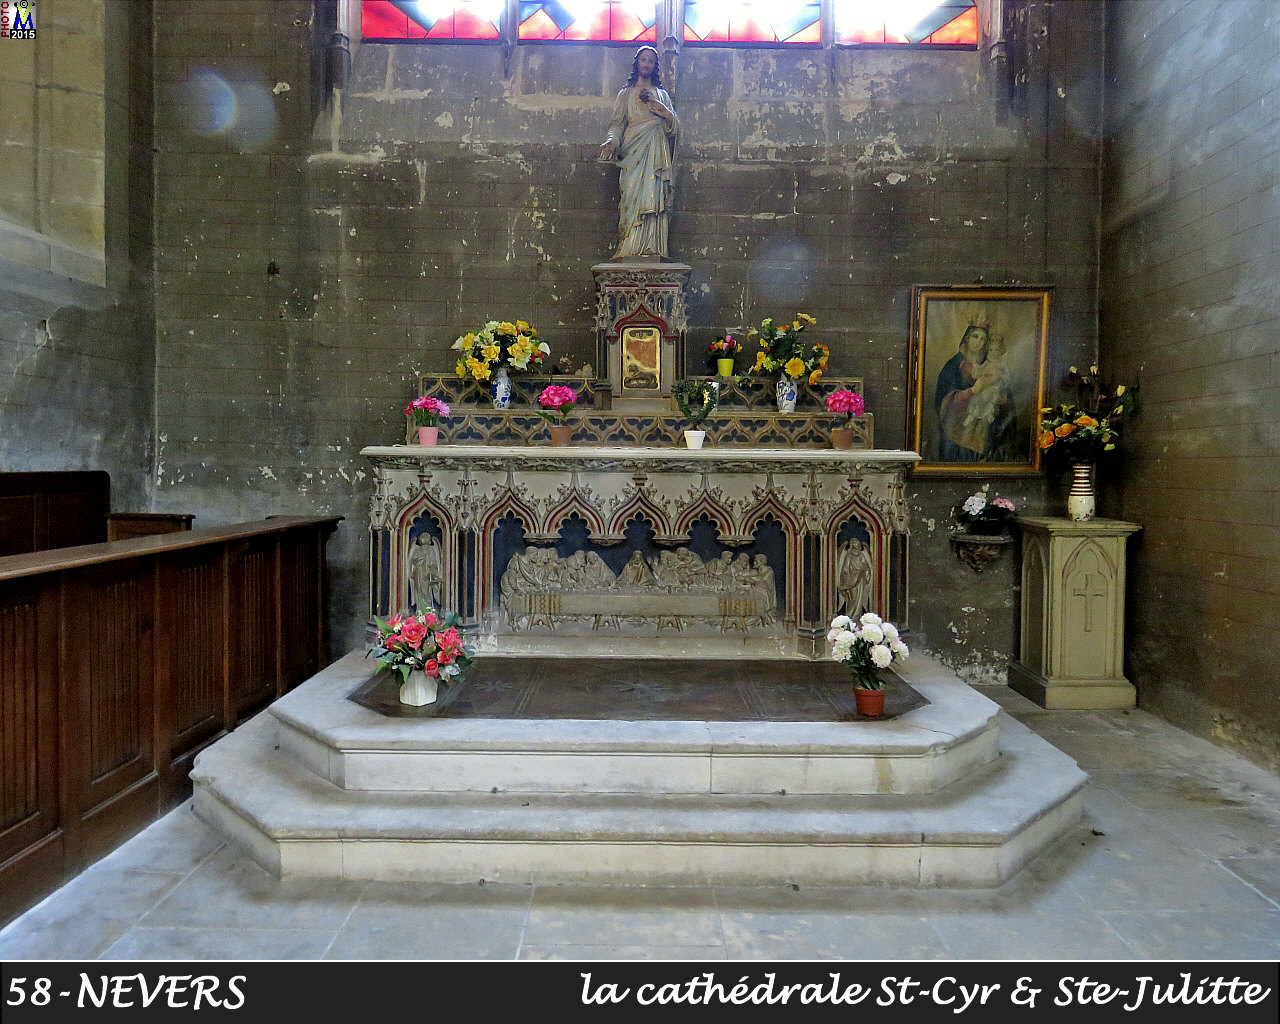 58NEVERS-cathedrale_229.jpg